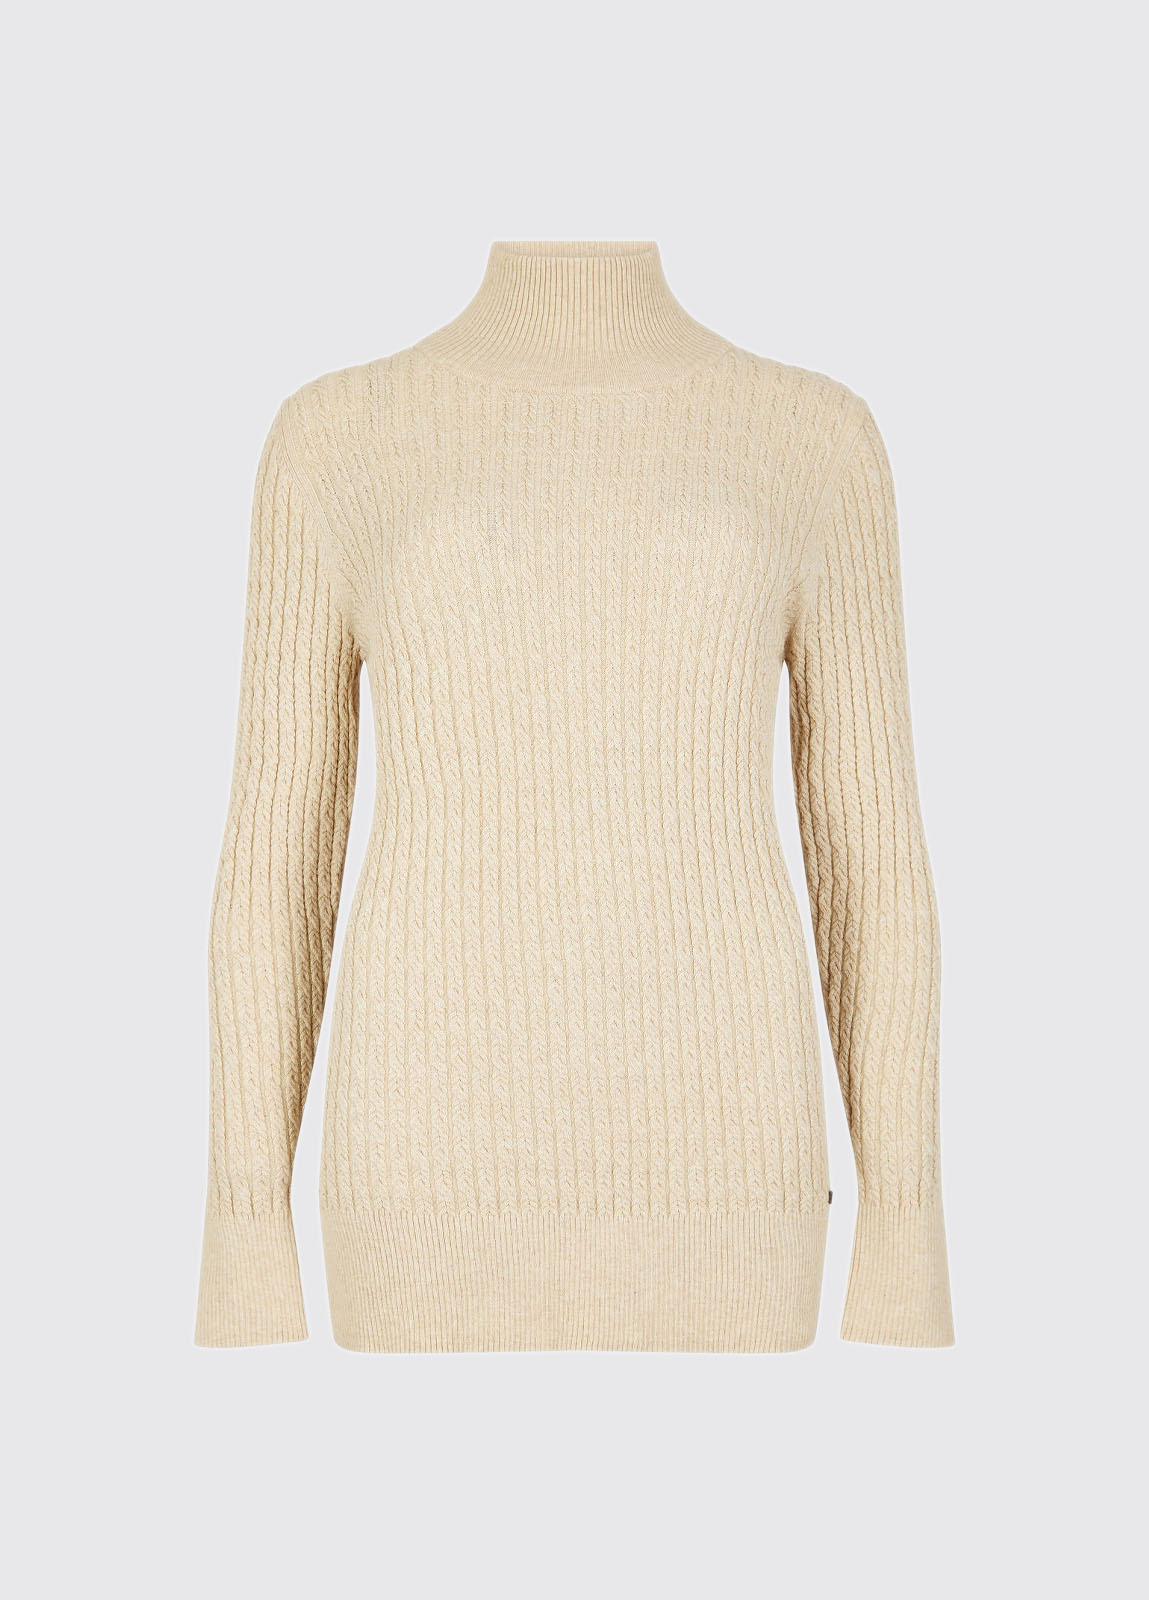 Cormack Women's sweater - Oyster